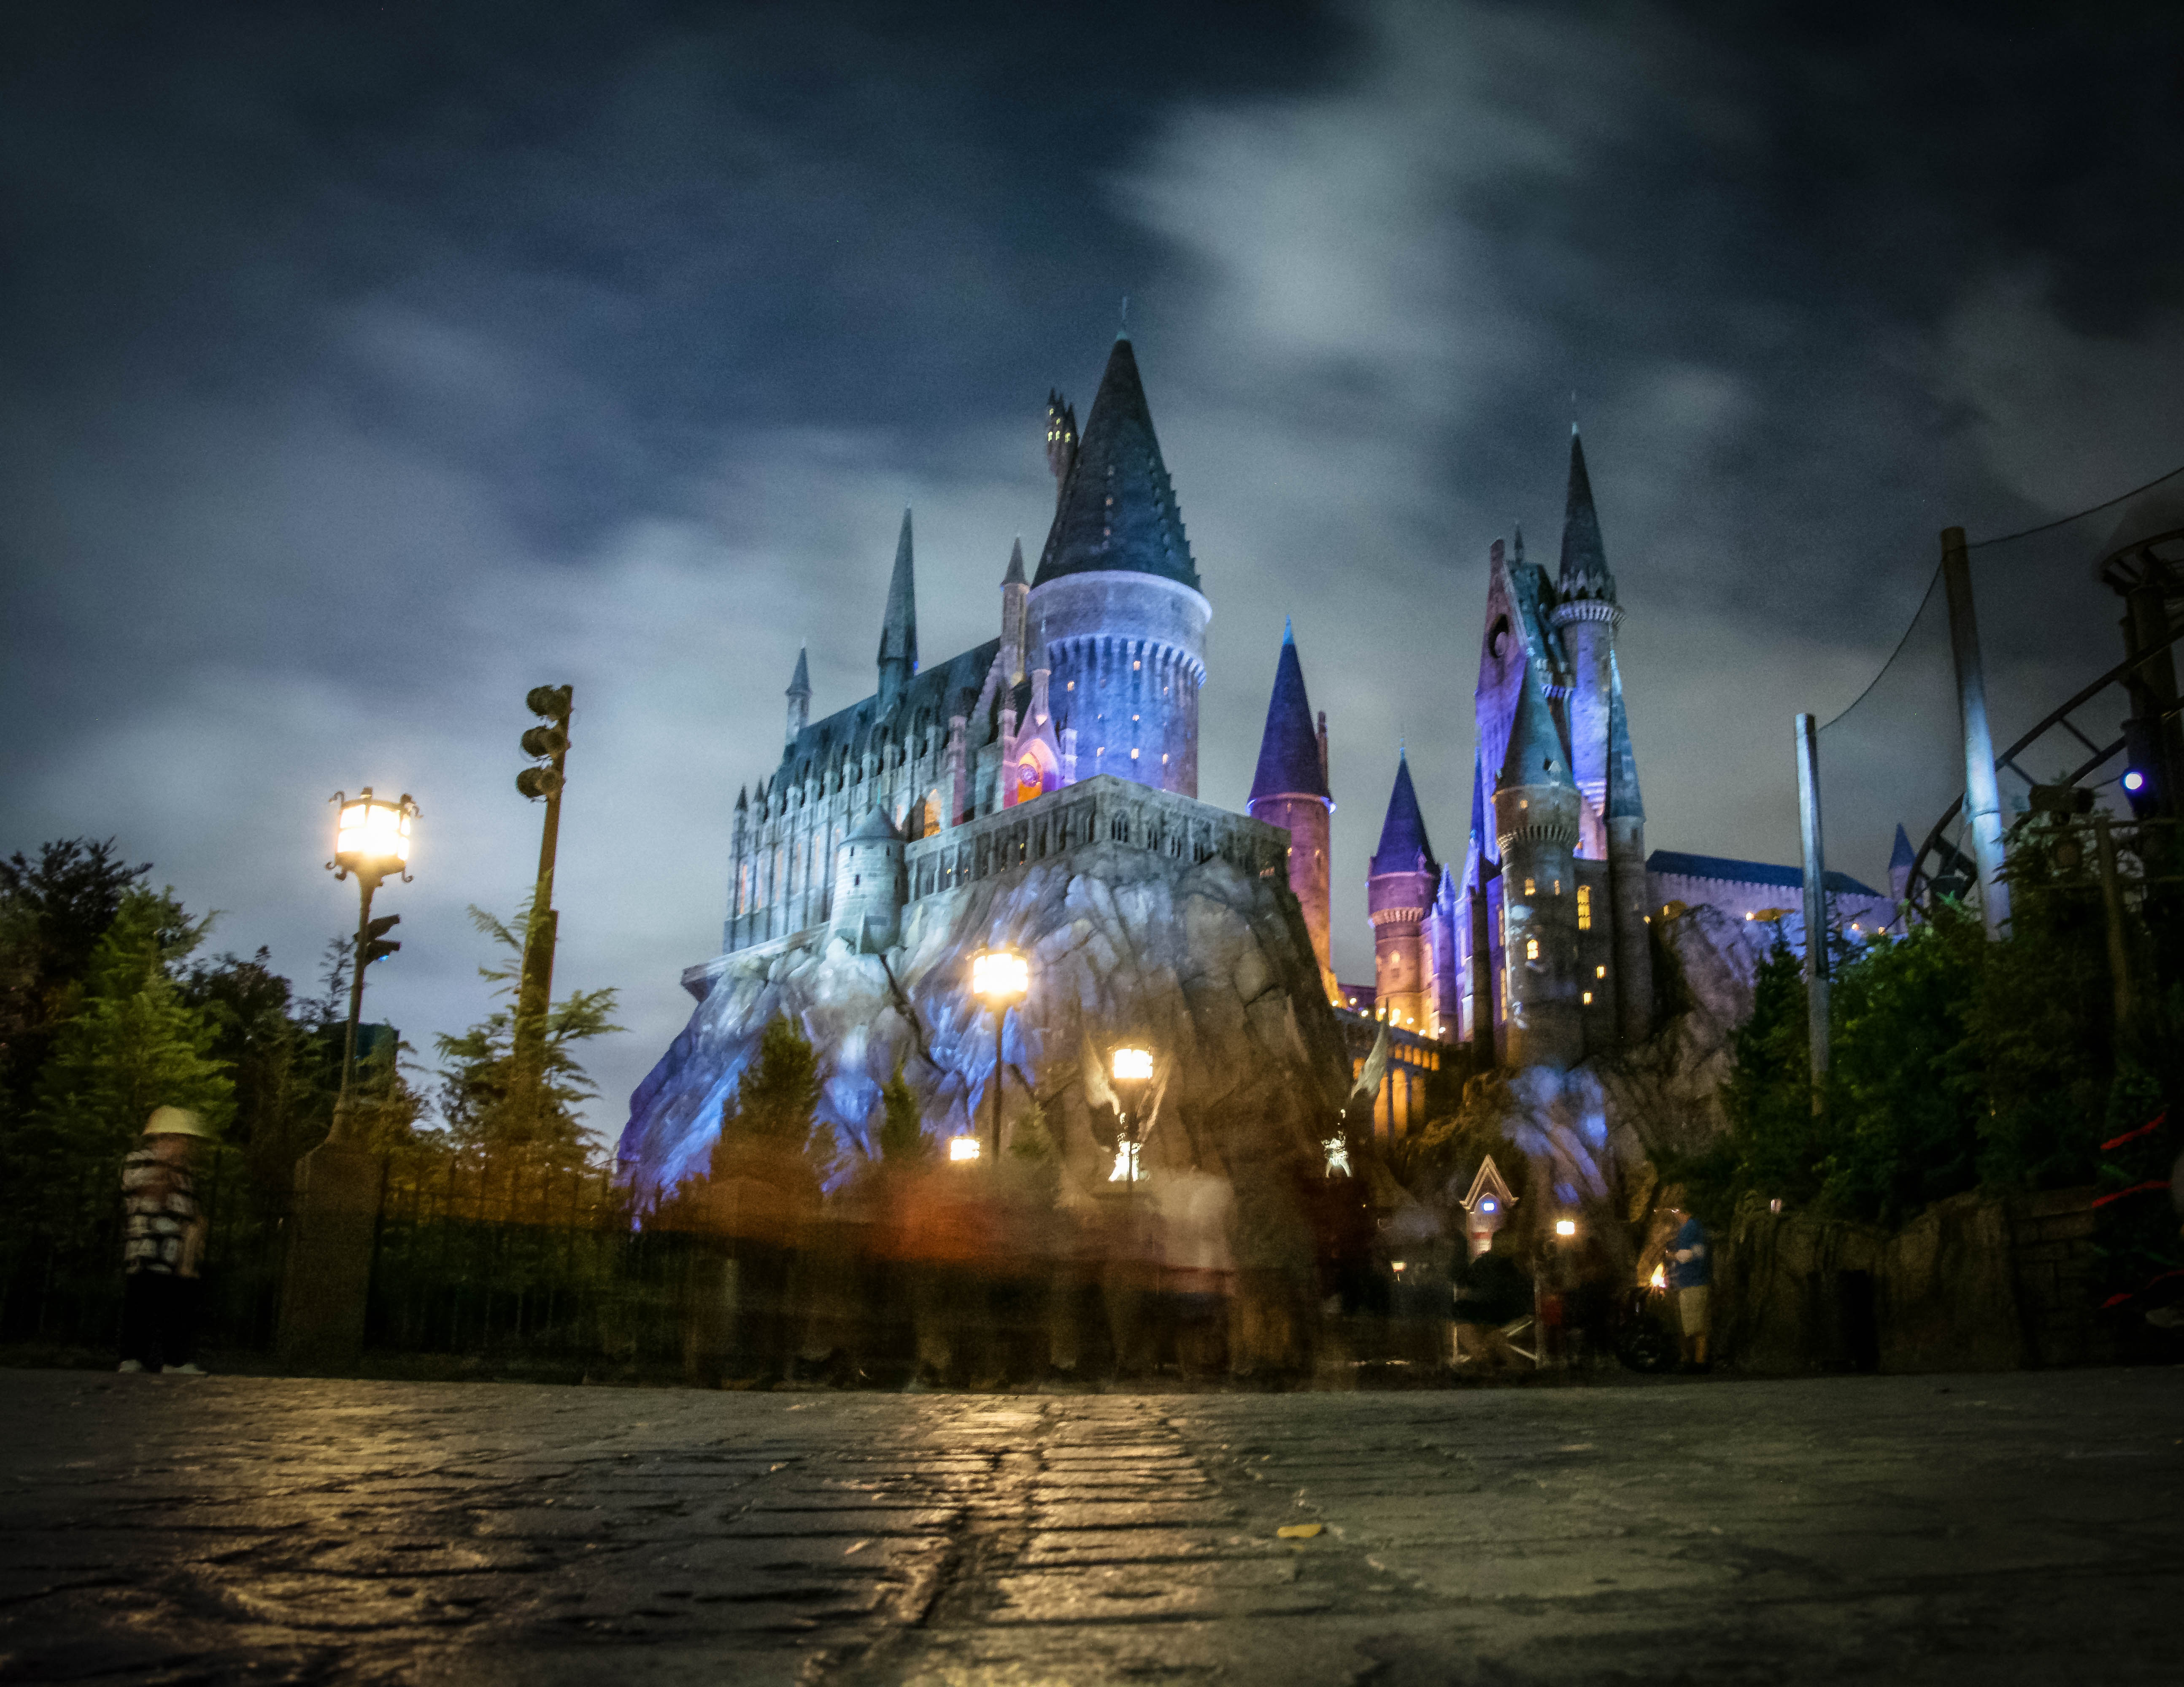 Hogwarts at night in the Wizarding World